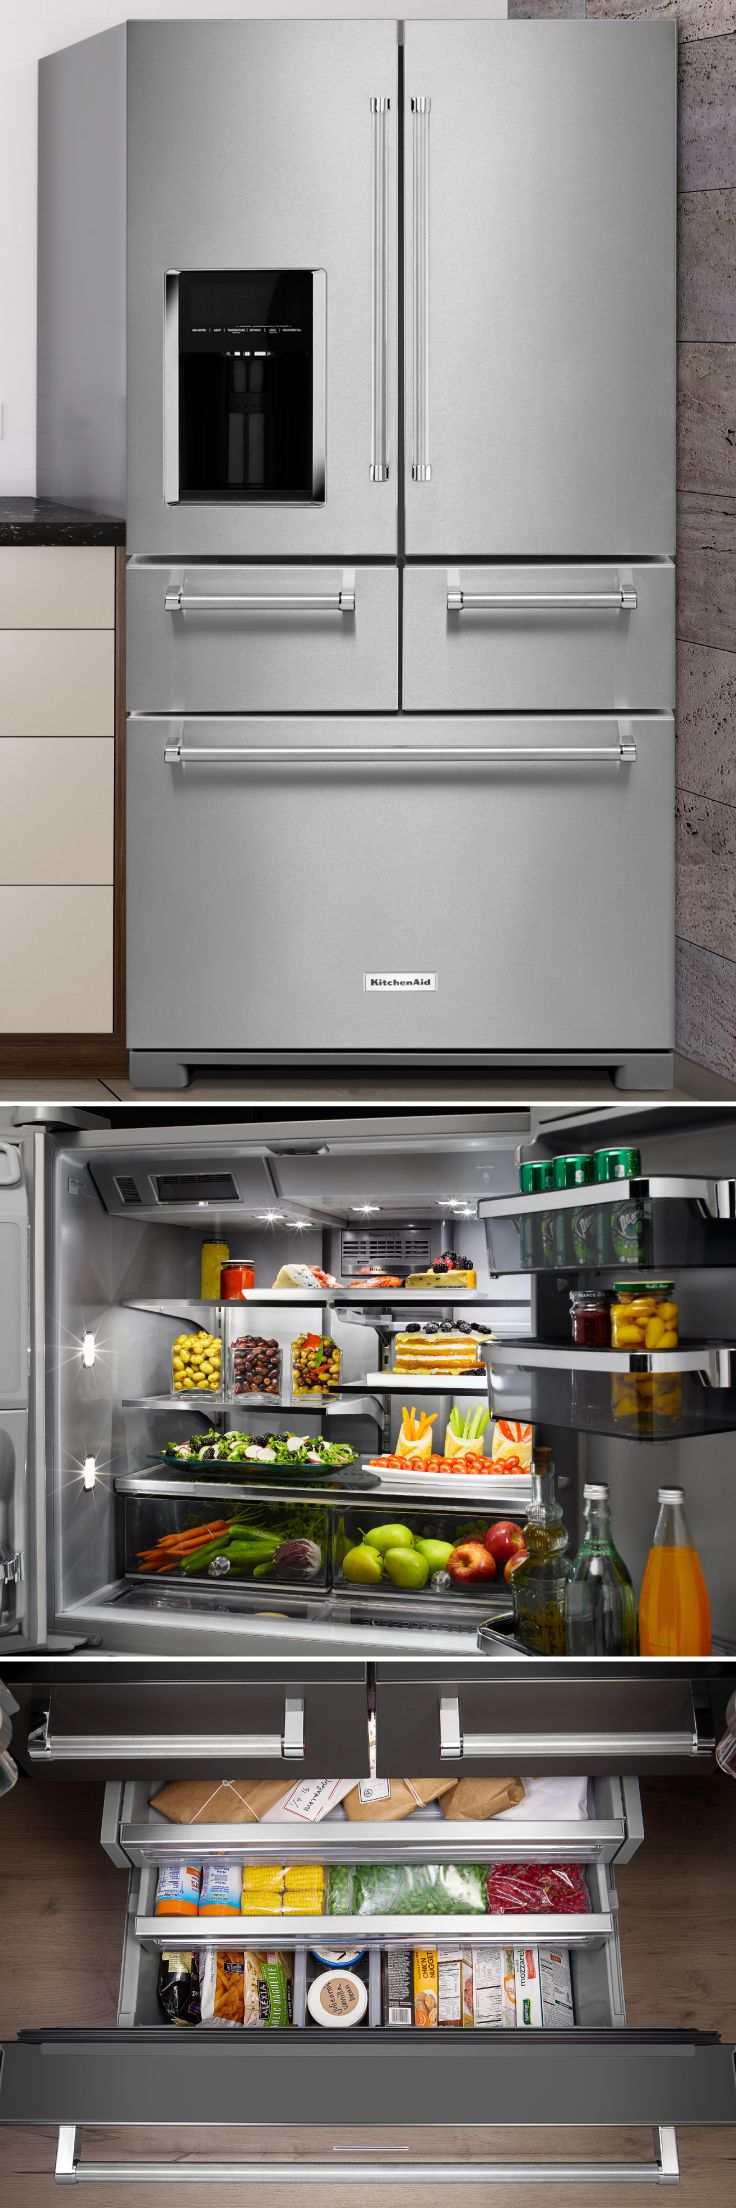 When it comes to fridge organization, it doesn't get much better than the KitchenAid Multi-Door Refrigerator. You'll love the sleek design, fresh technology, and adjustable shelving that will keep your kitchen well-stocked. Get this premium fridge for less at Sears Outlet! #fridgegoals